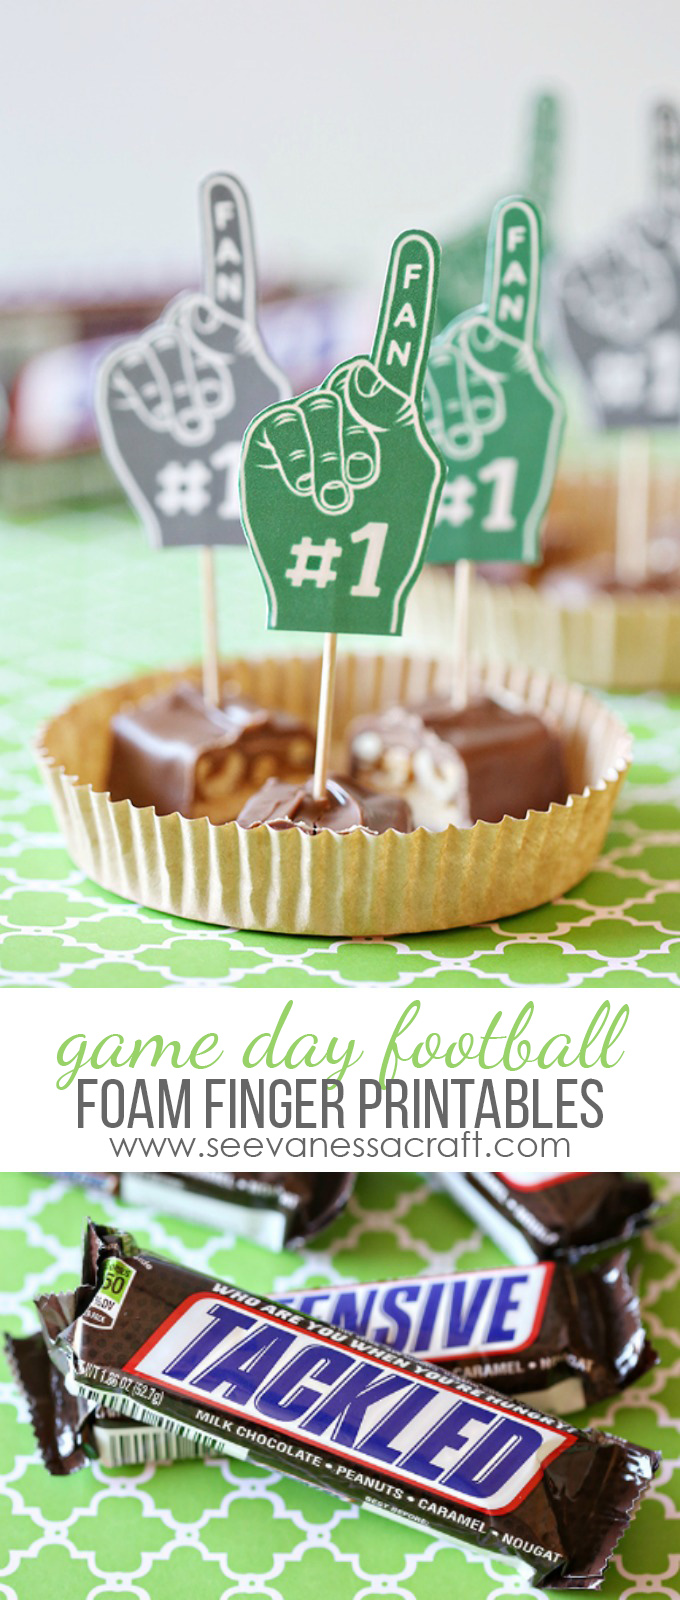 game-day-foam-finger-printable-toppers-copy